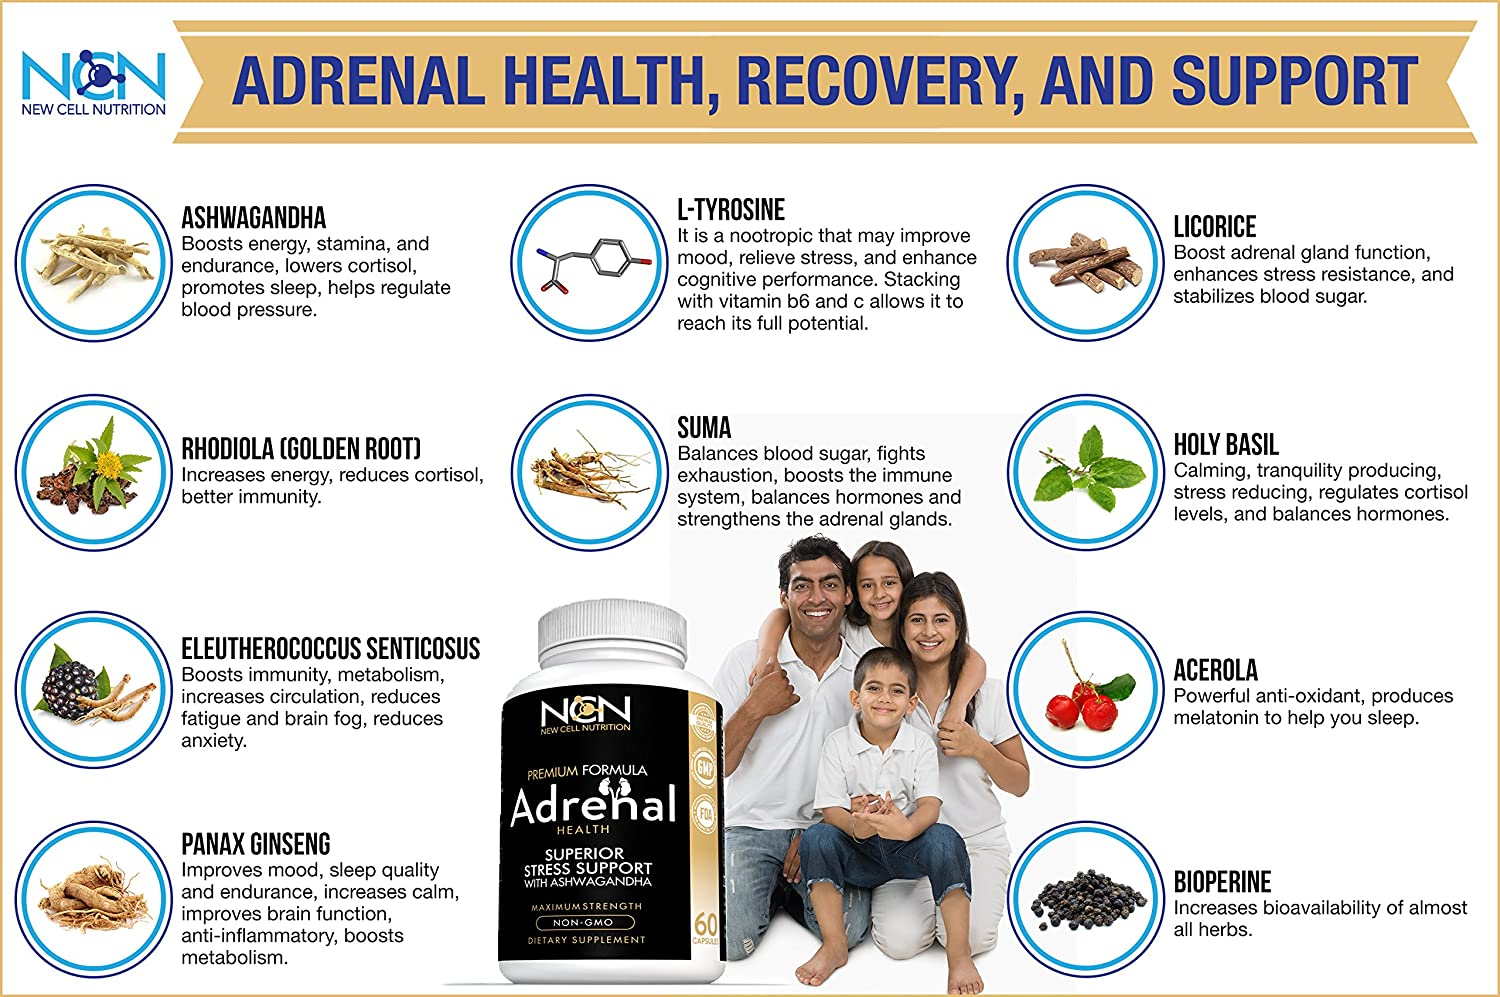 ... Basil for Adrenal Health - Premium Herbal Blend to Support Optimal Energy and Health - Supports Fatigue Management, Cortisol Regulation & Stress Relief, ...